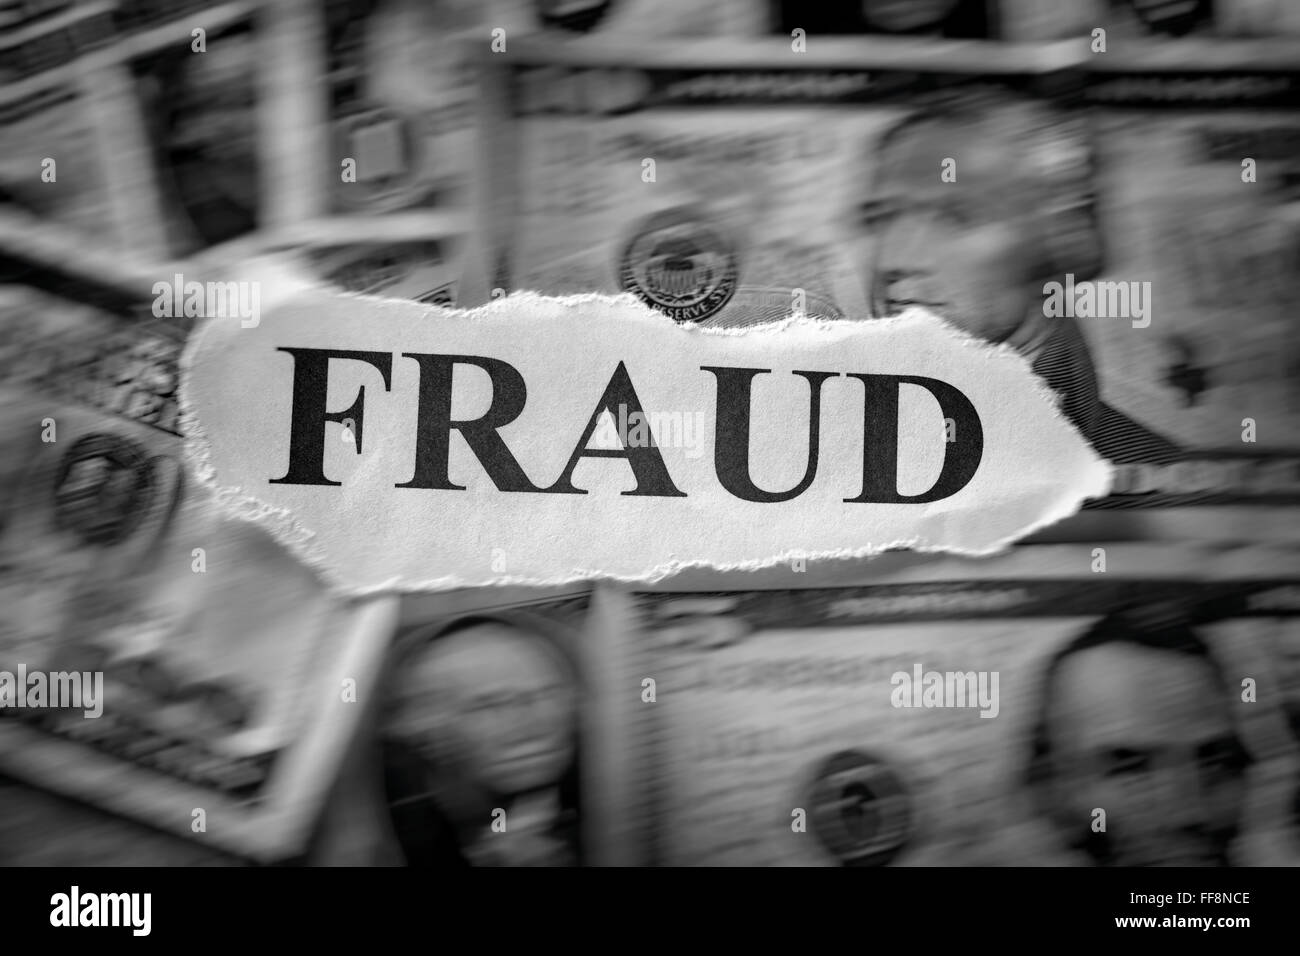 Fraud concept. Torn piece of paper with the word 'Fraud' on dollar bills. Motion blur. Black and White. - Stock Image